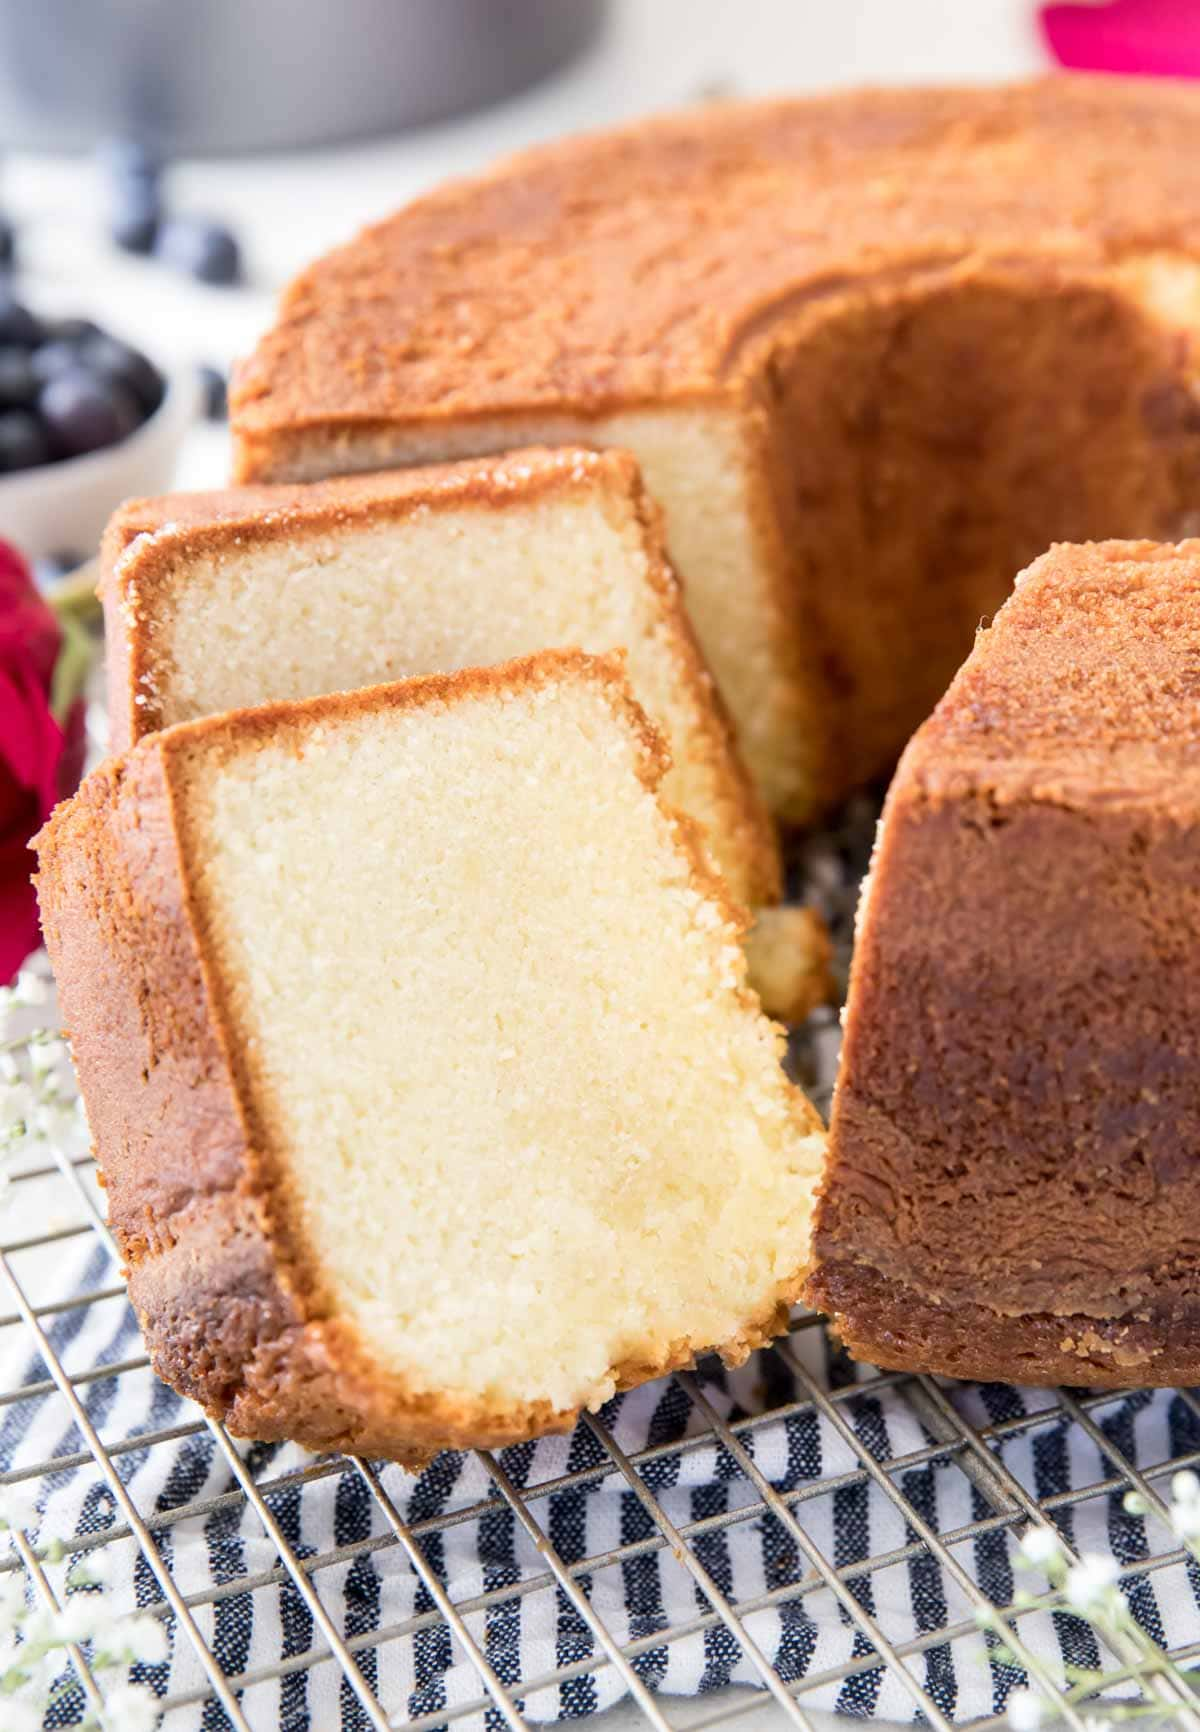 two slices of freshly cut pound cake